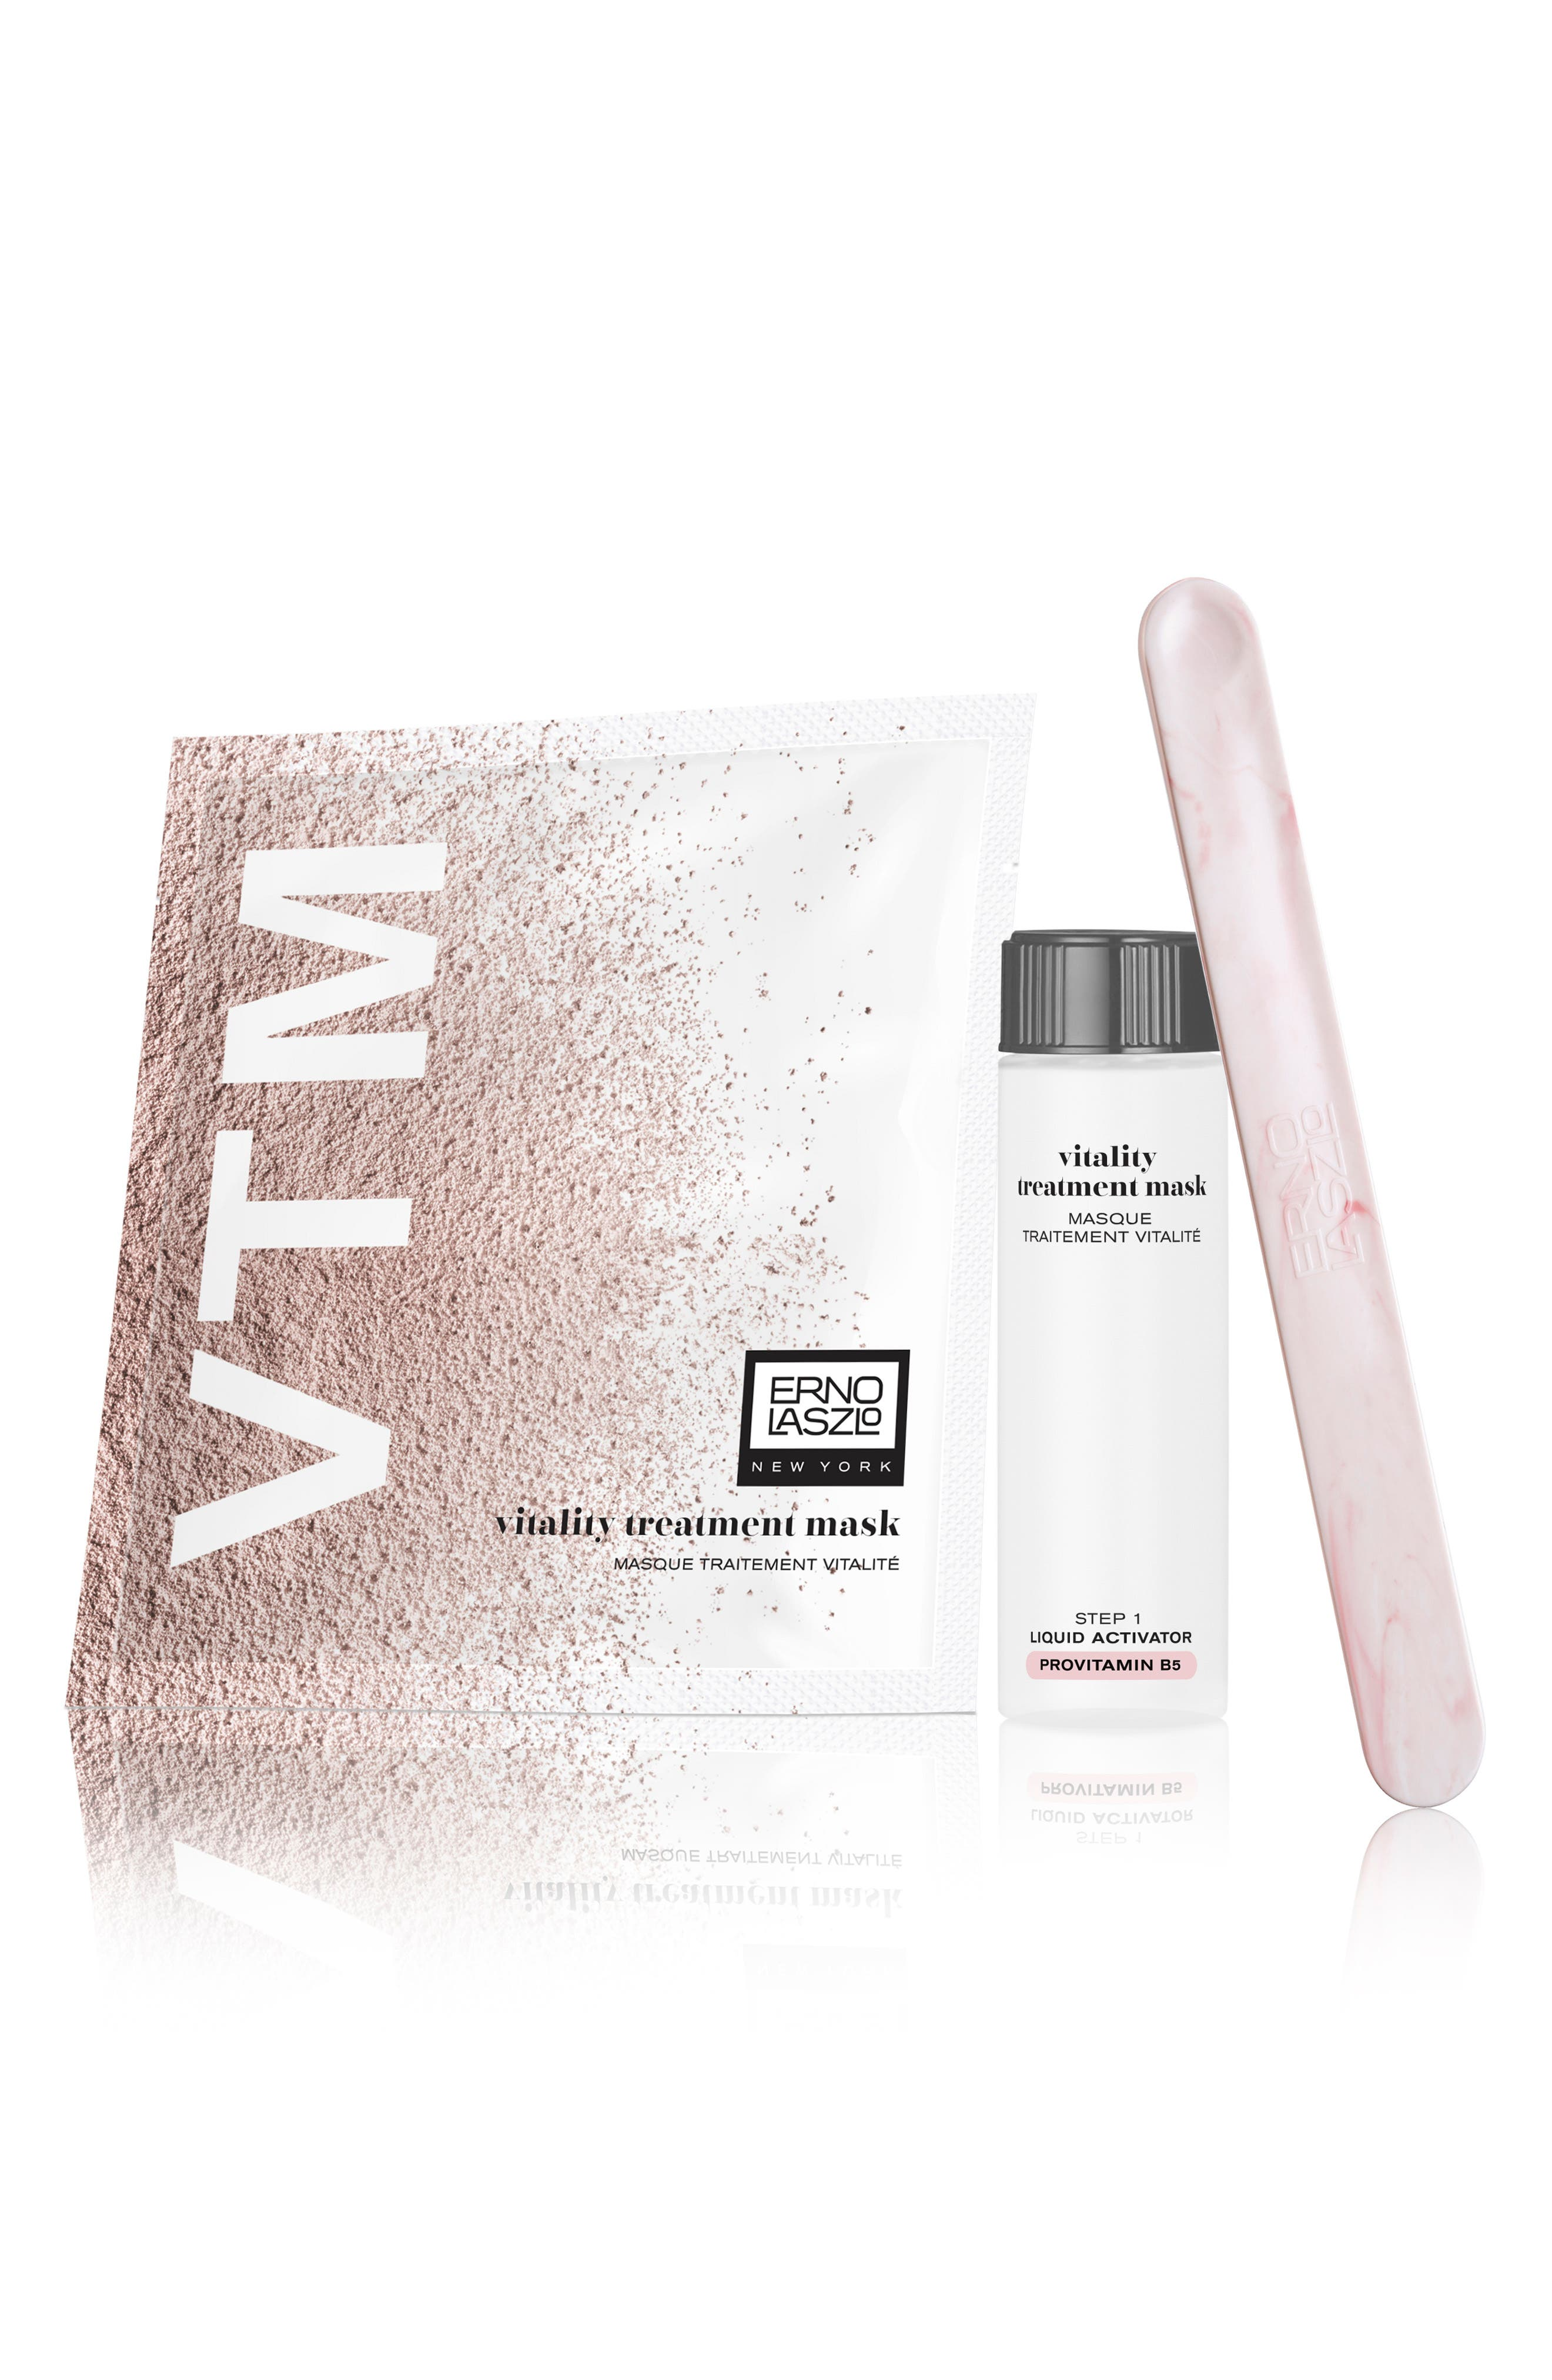 Erno Laszlo 4-Pack Vitality Treatment Mask at Nordstrom